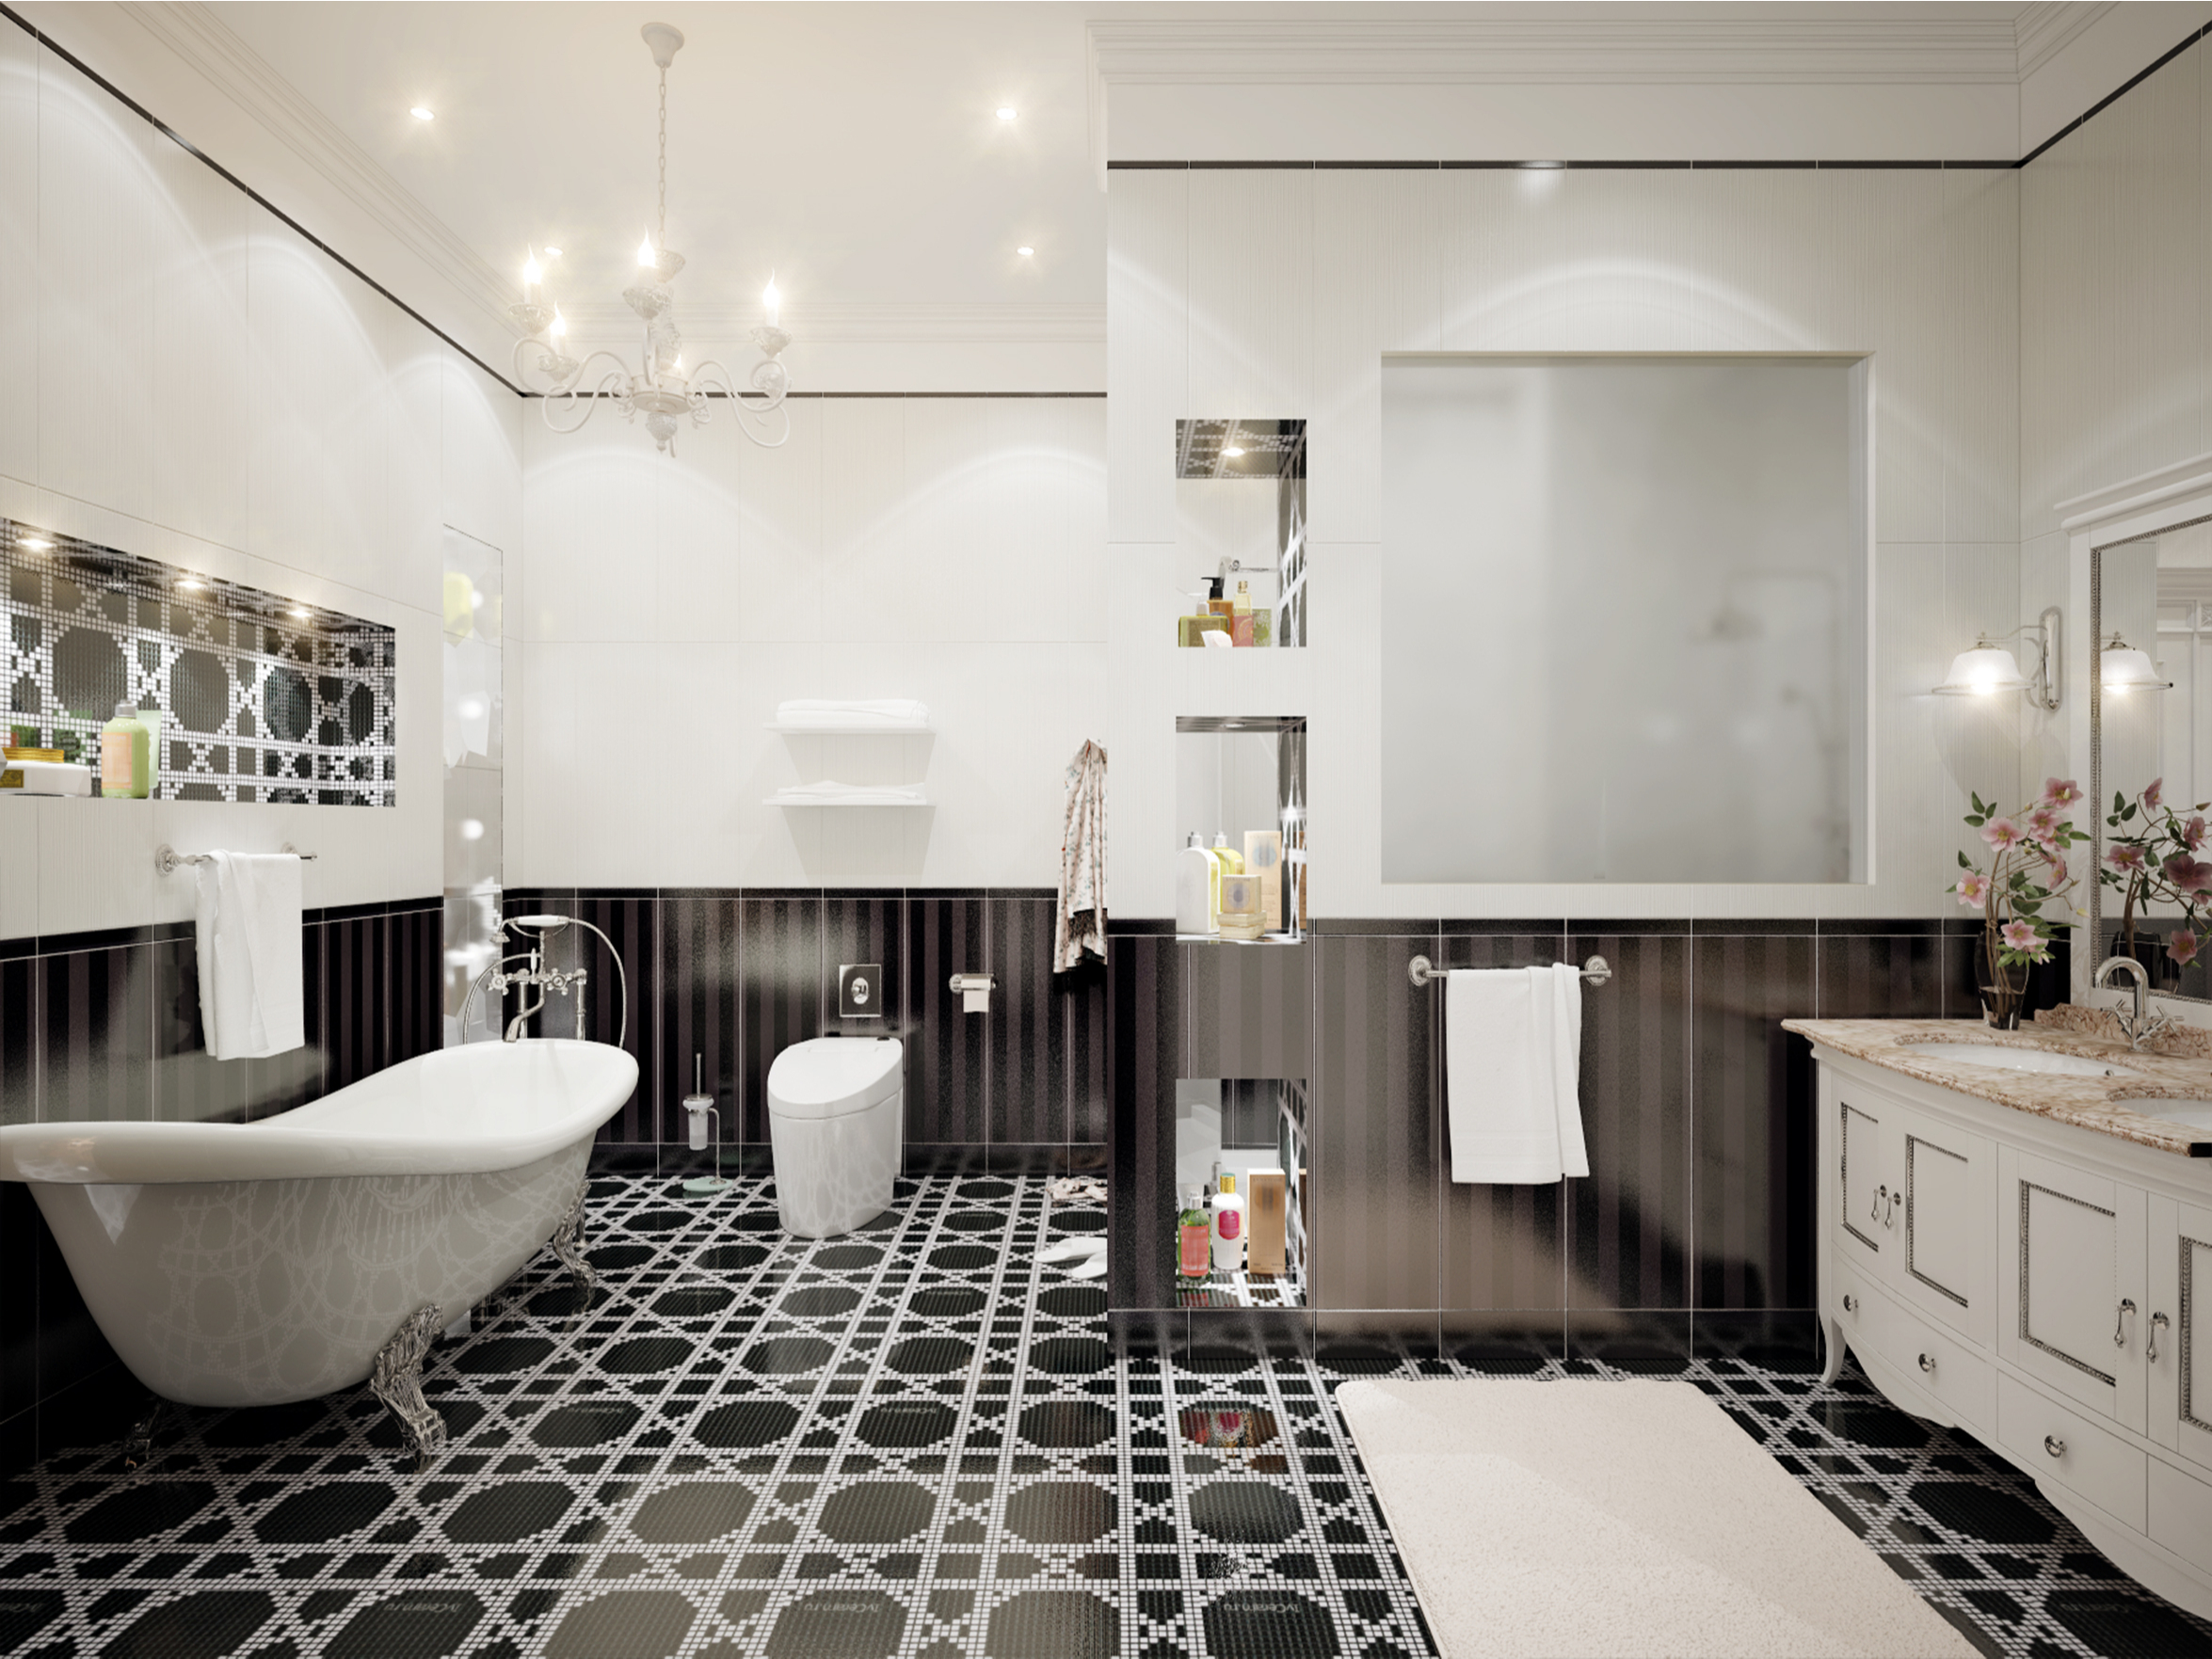 Black and white anything will always be timeless! Why not design your bathroom to be a classic, vintage black and white look? These vintage bathroom tile ideas are amazing! Don't miss out.